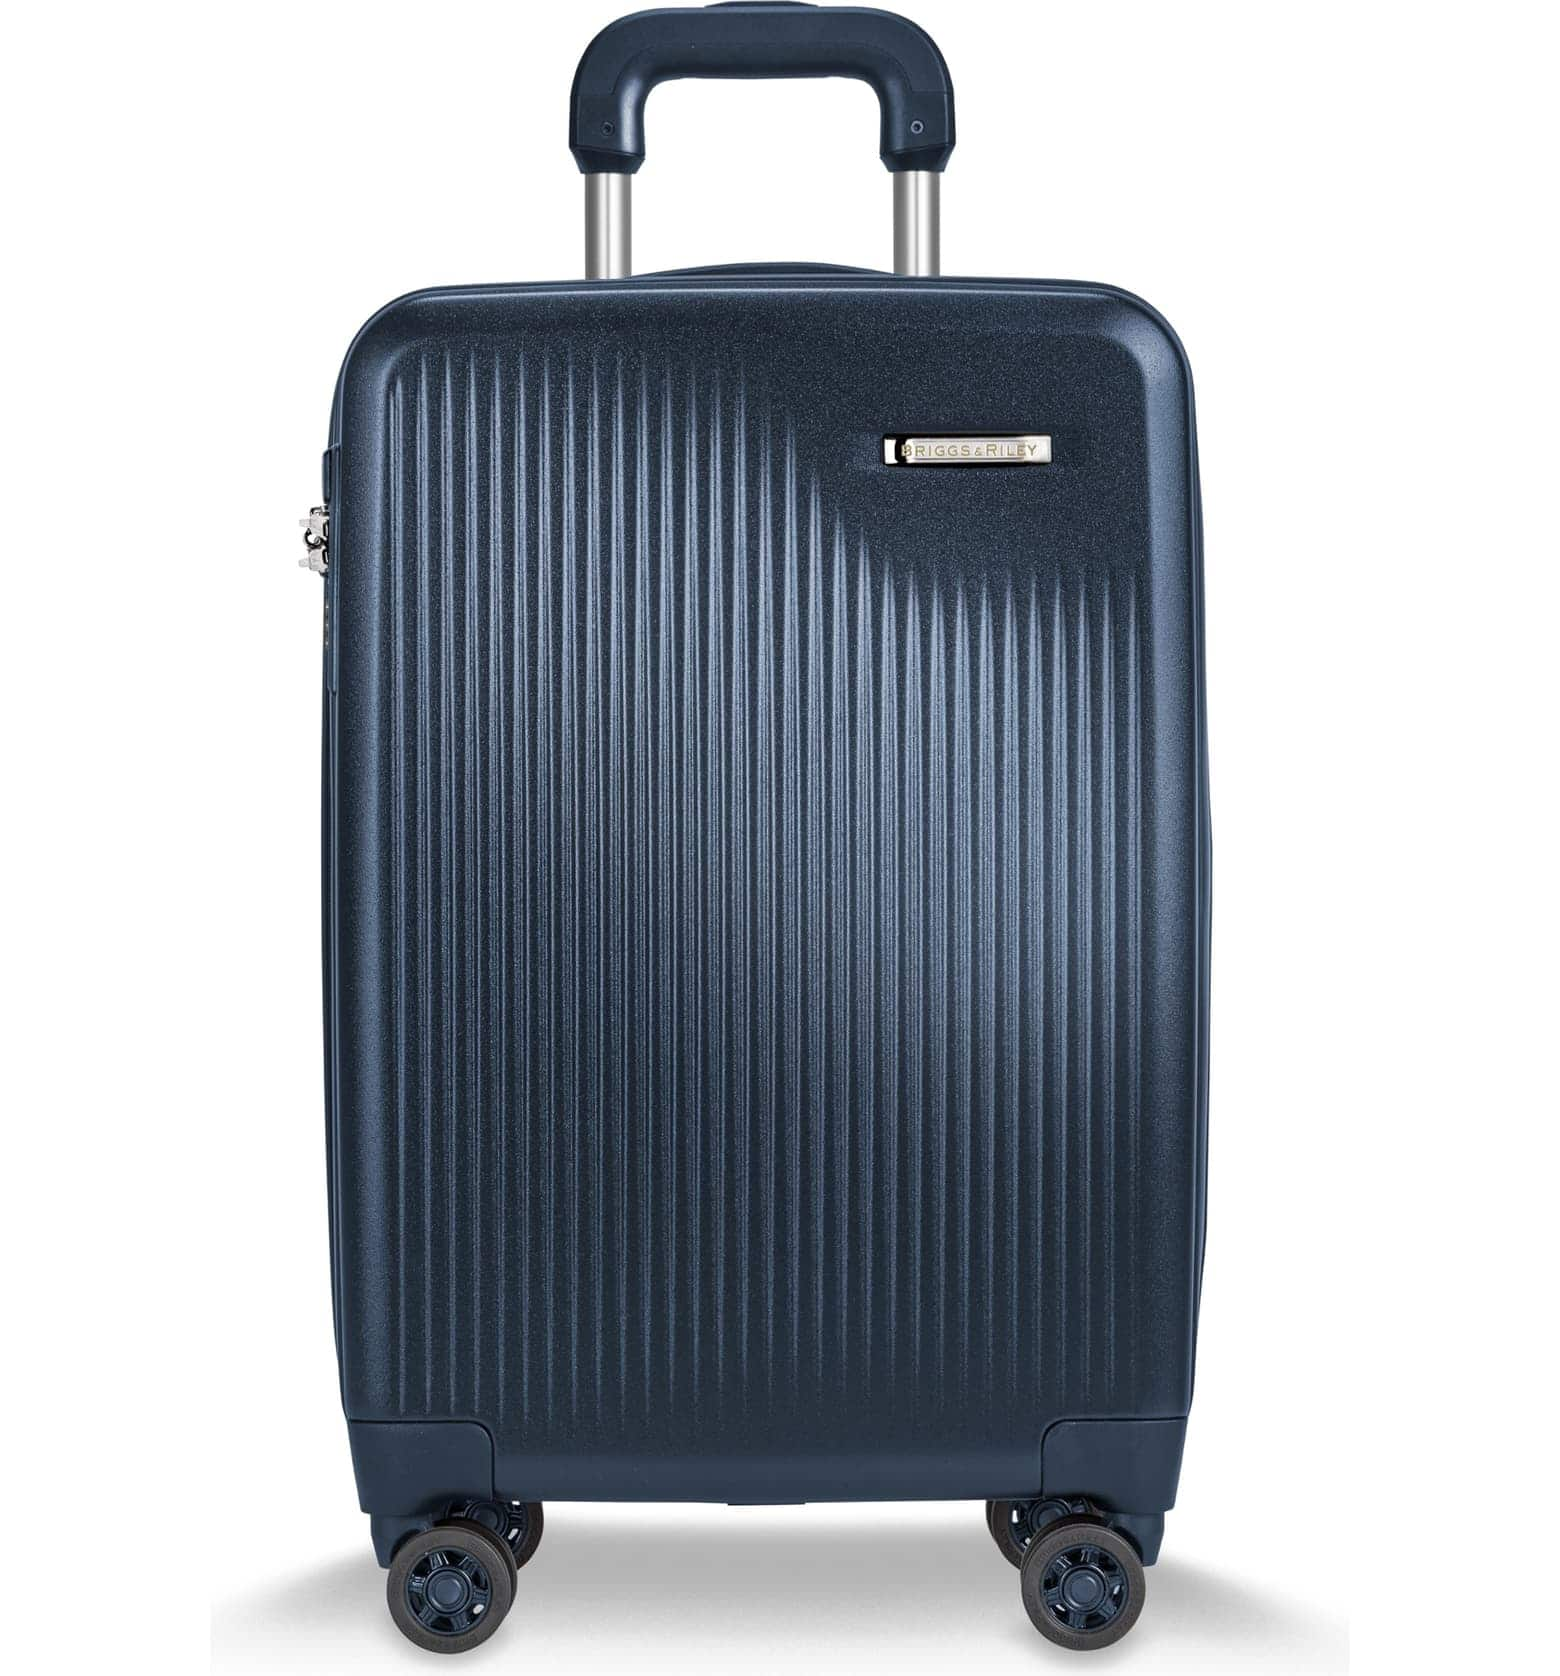 Briggs & Riley Sympatico Expandable Carry-On Luggage (50% off - $290; various colors)